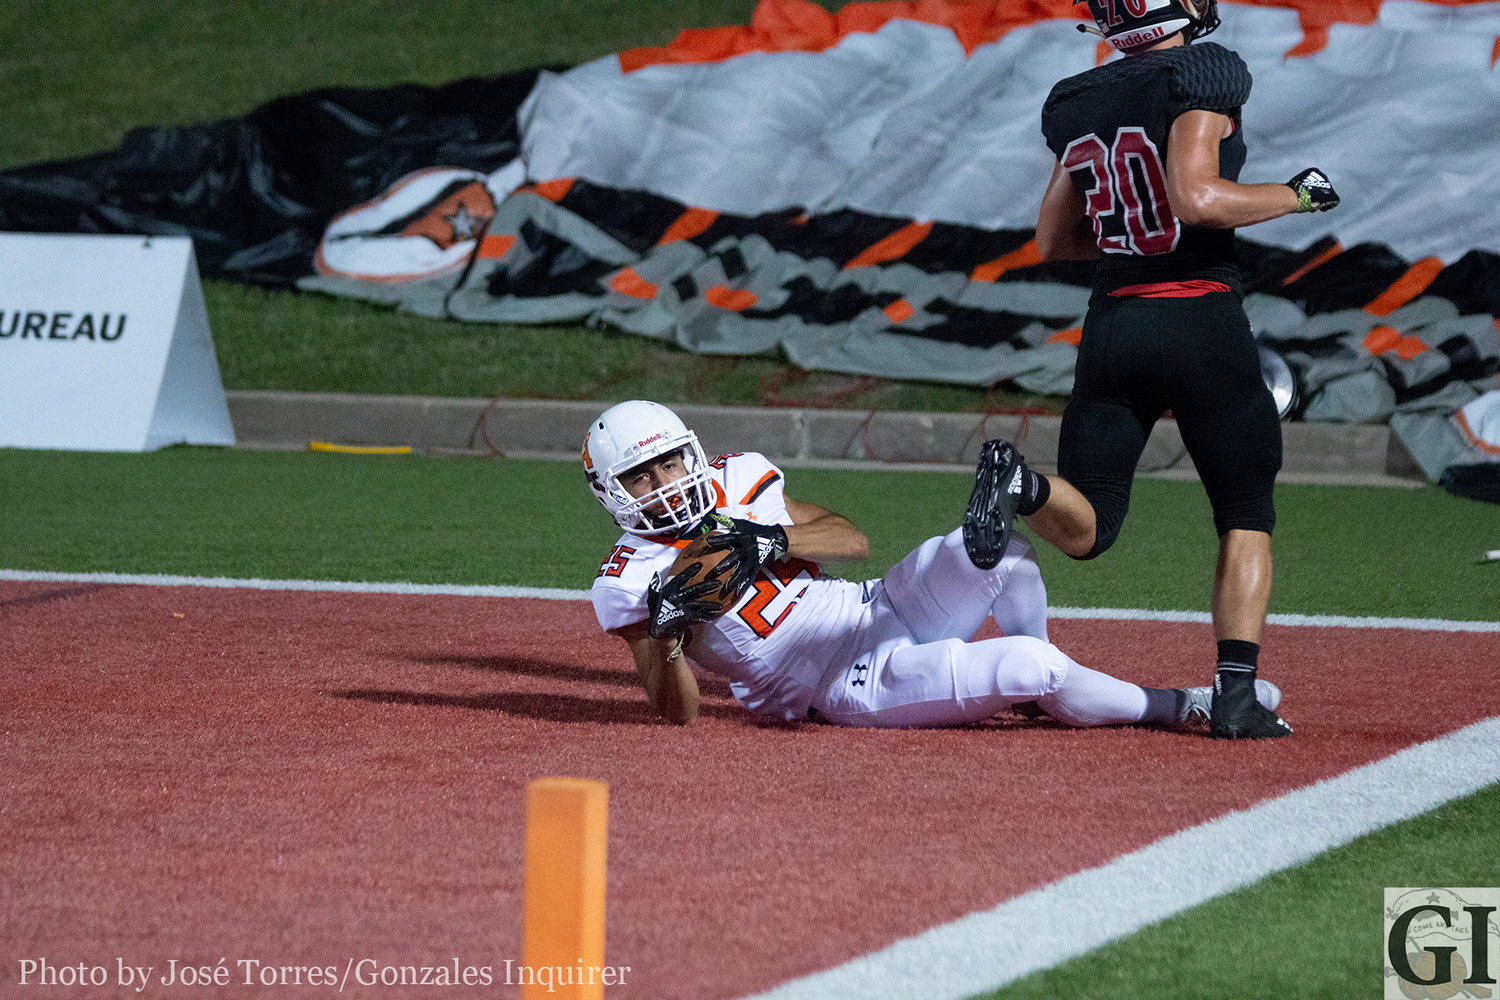 Heber Cardona (25) makes a diving catch in the end zone, the Apaches first touchdown reception since Sept. 7.